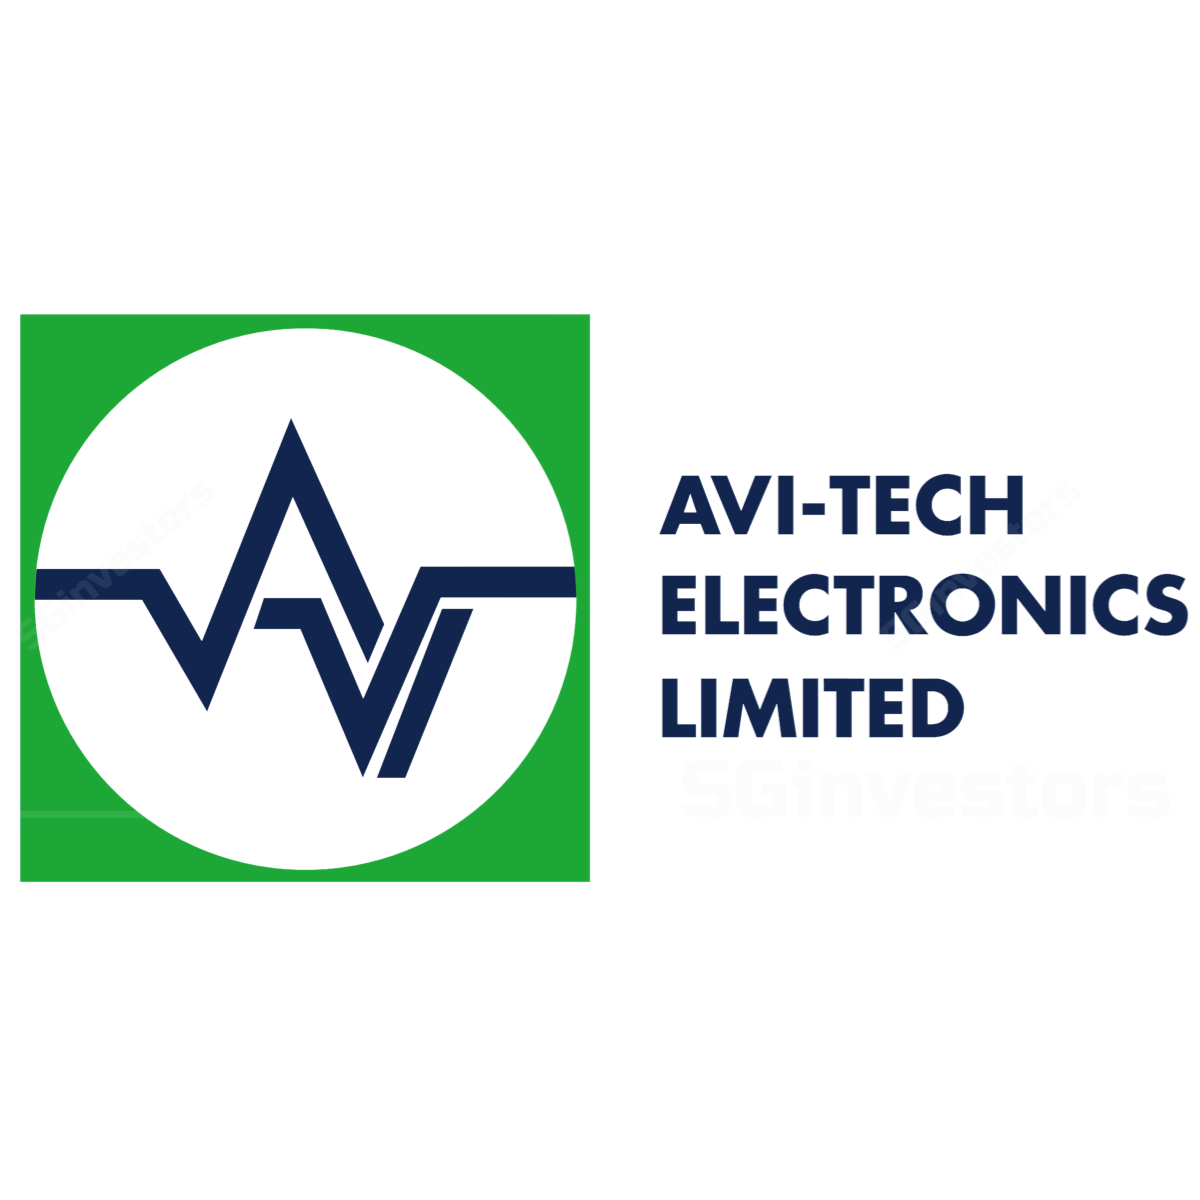 Avi-Tech Electronics - RHB Invest 2018-05-16: Slowdown Hits 3qfy18